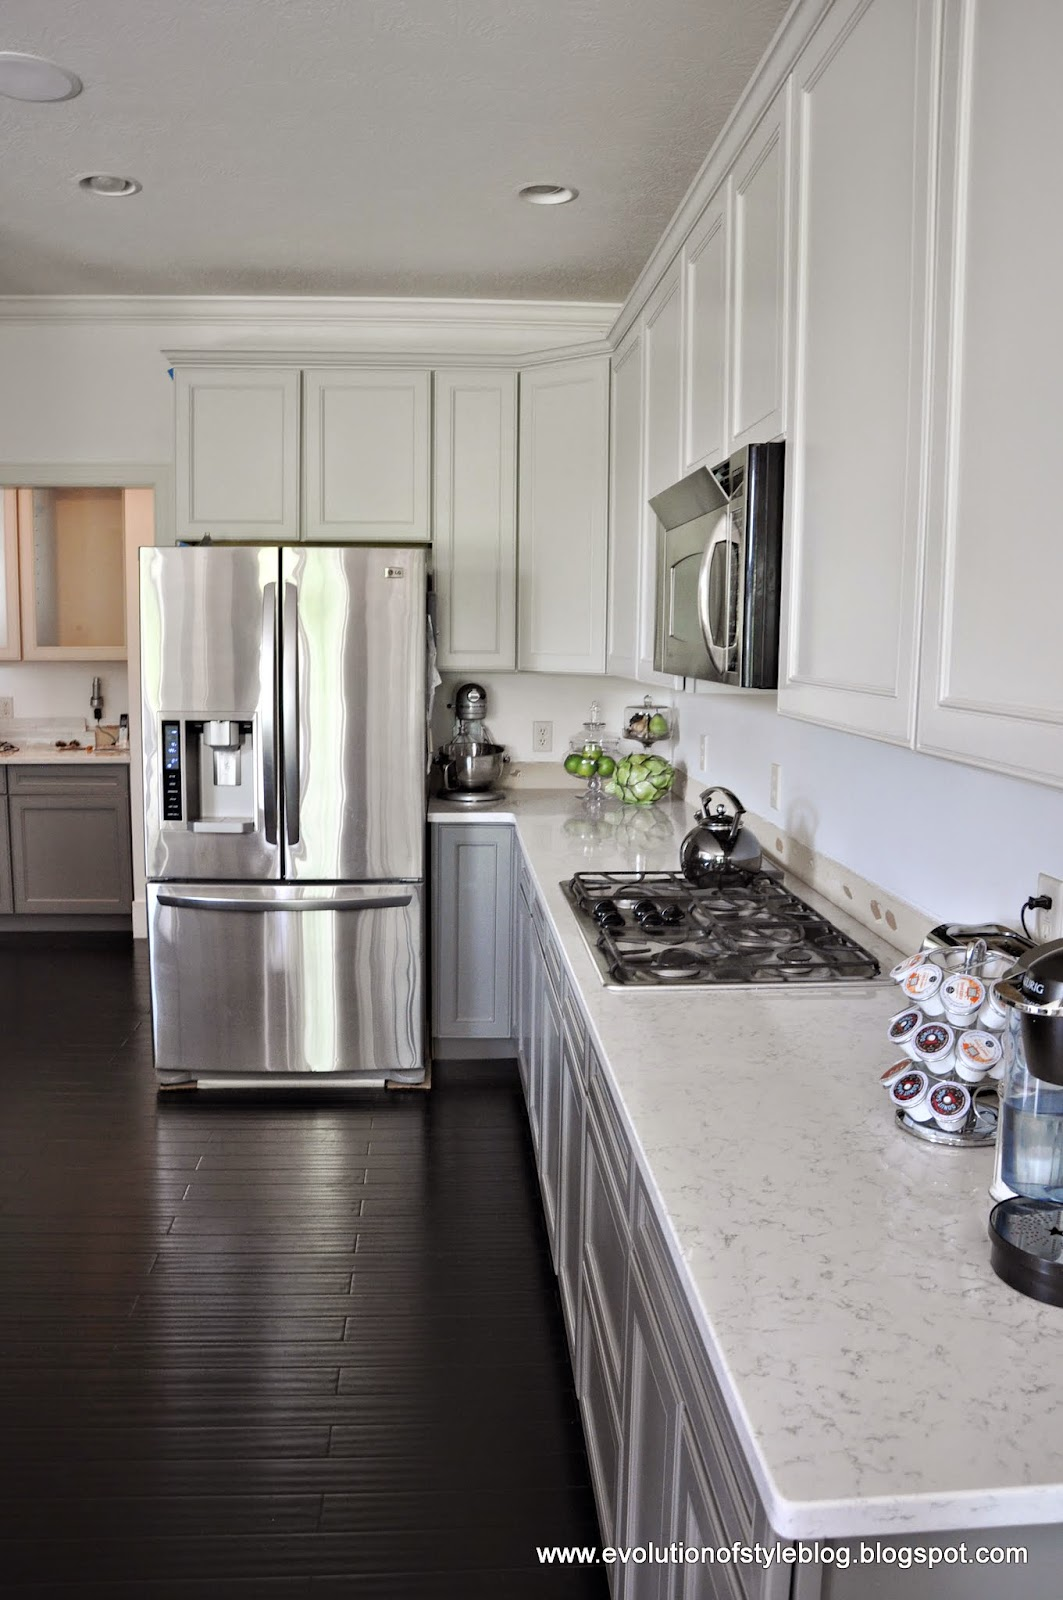 Painted Cabinets In Repose Gray And Gauntlet Gray Evolution Of Style